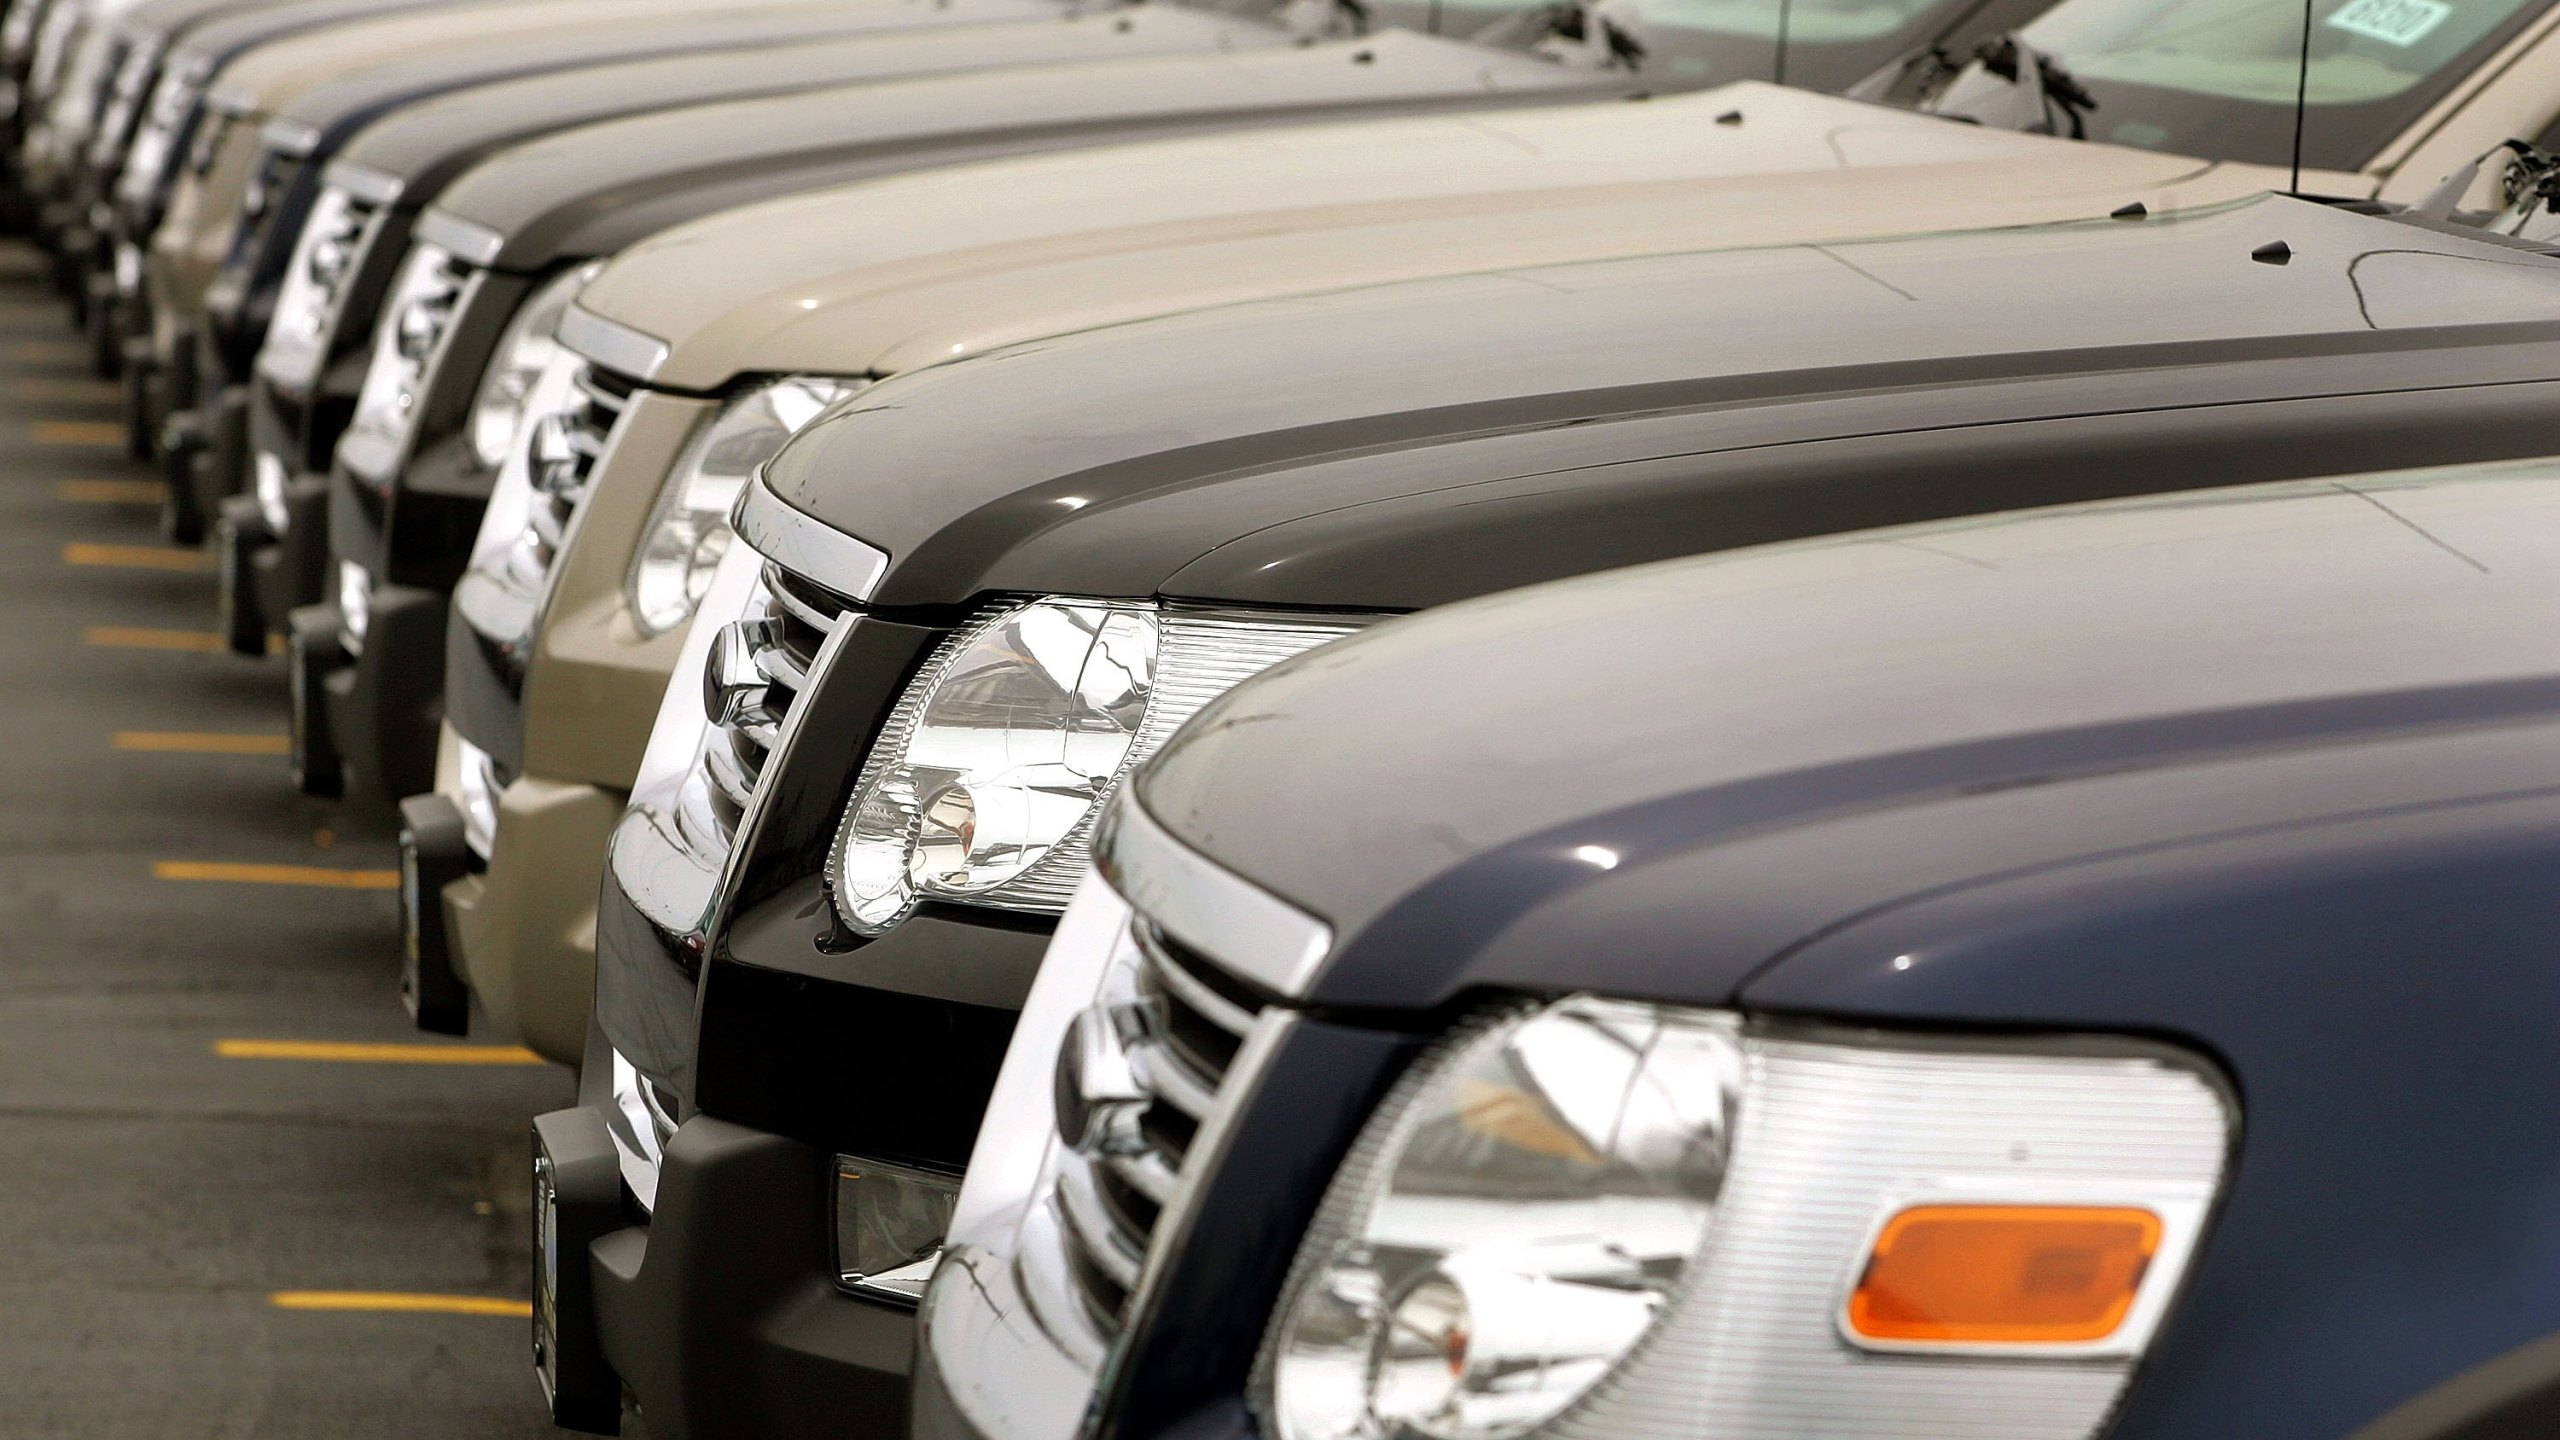 Ford Explorer SUVs are parked at the Golf Mill Ford on May 3, 2006 in Niles, Illinois. (Credit: Tim Boyle/Getty Images)